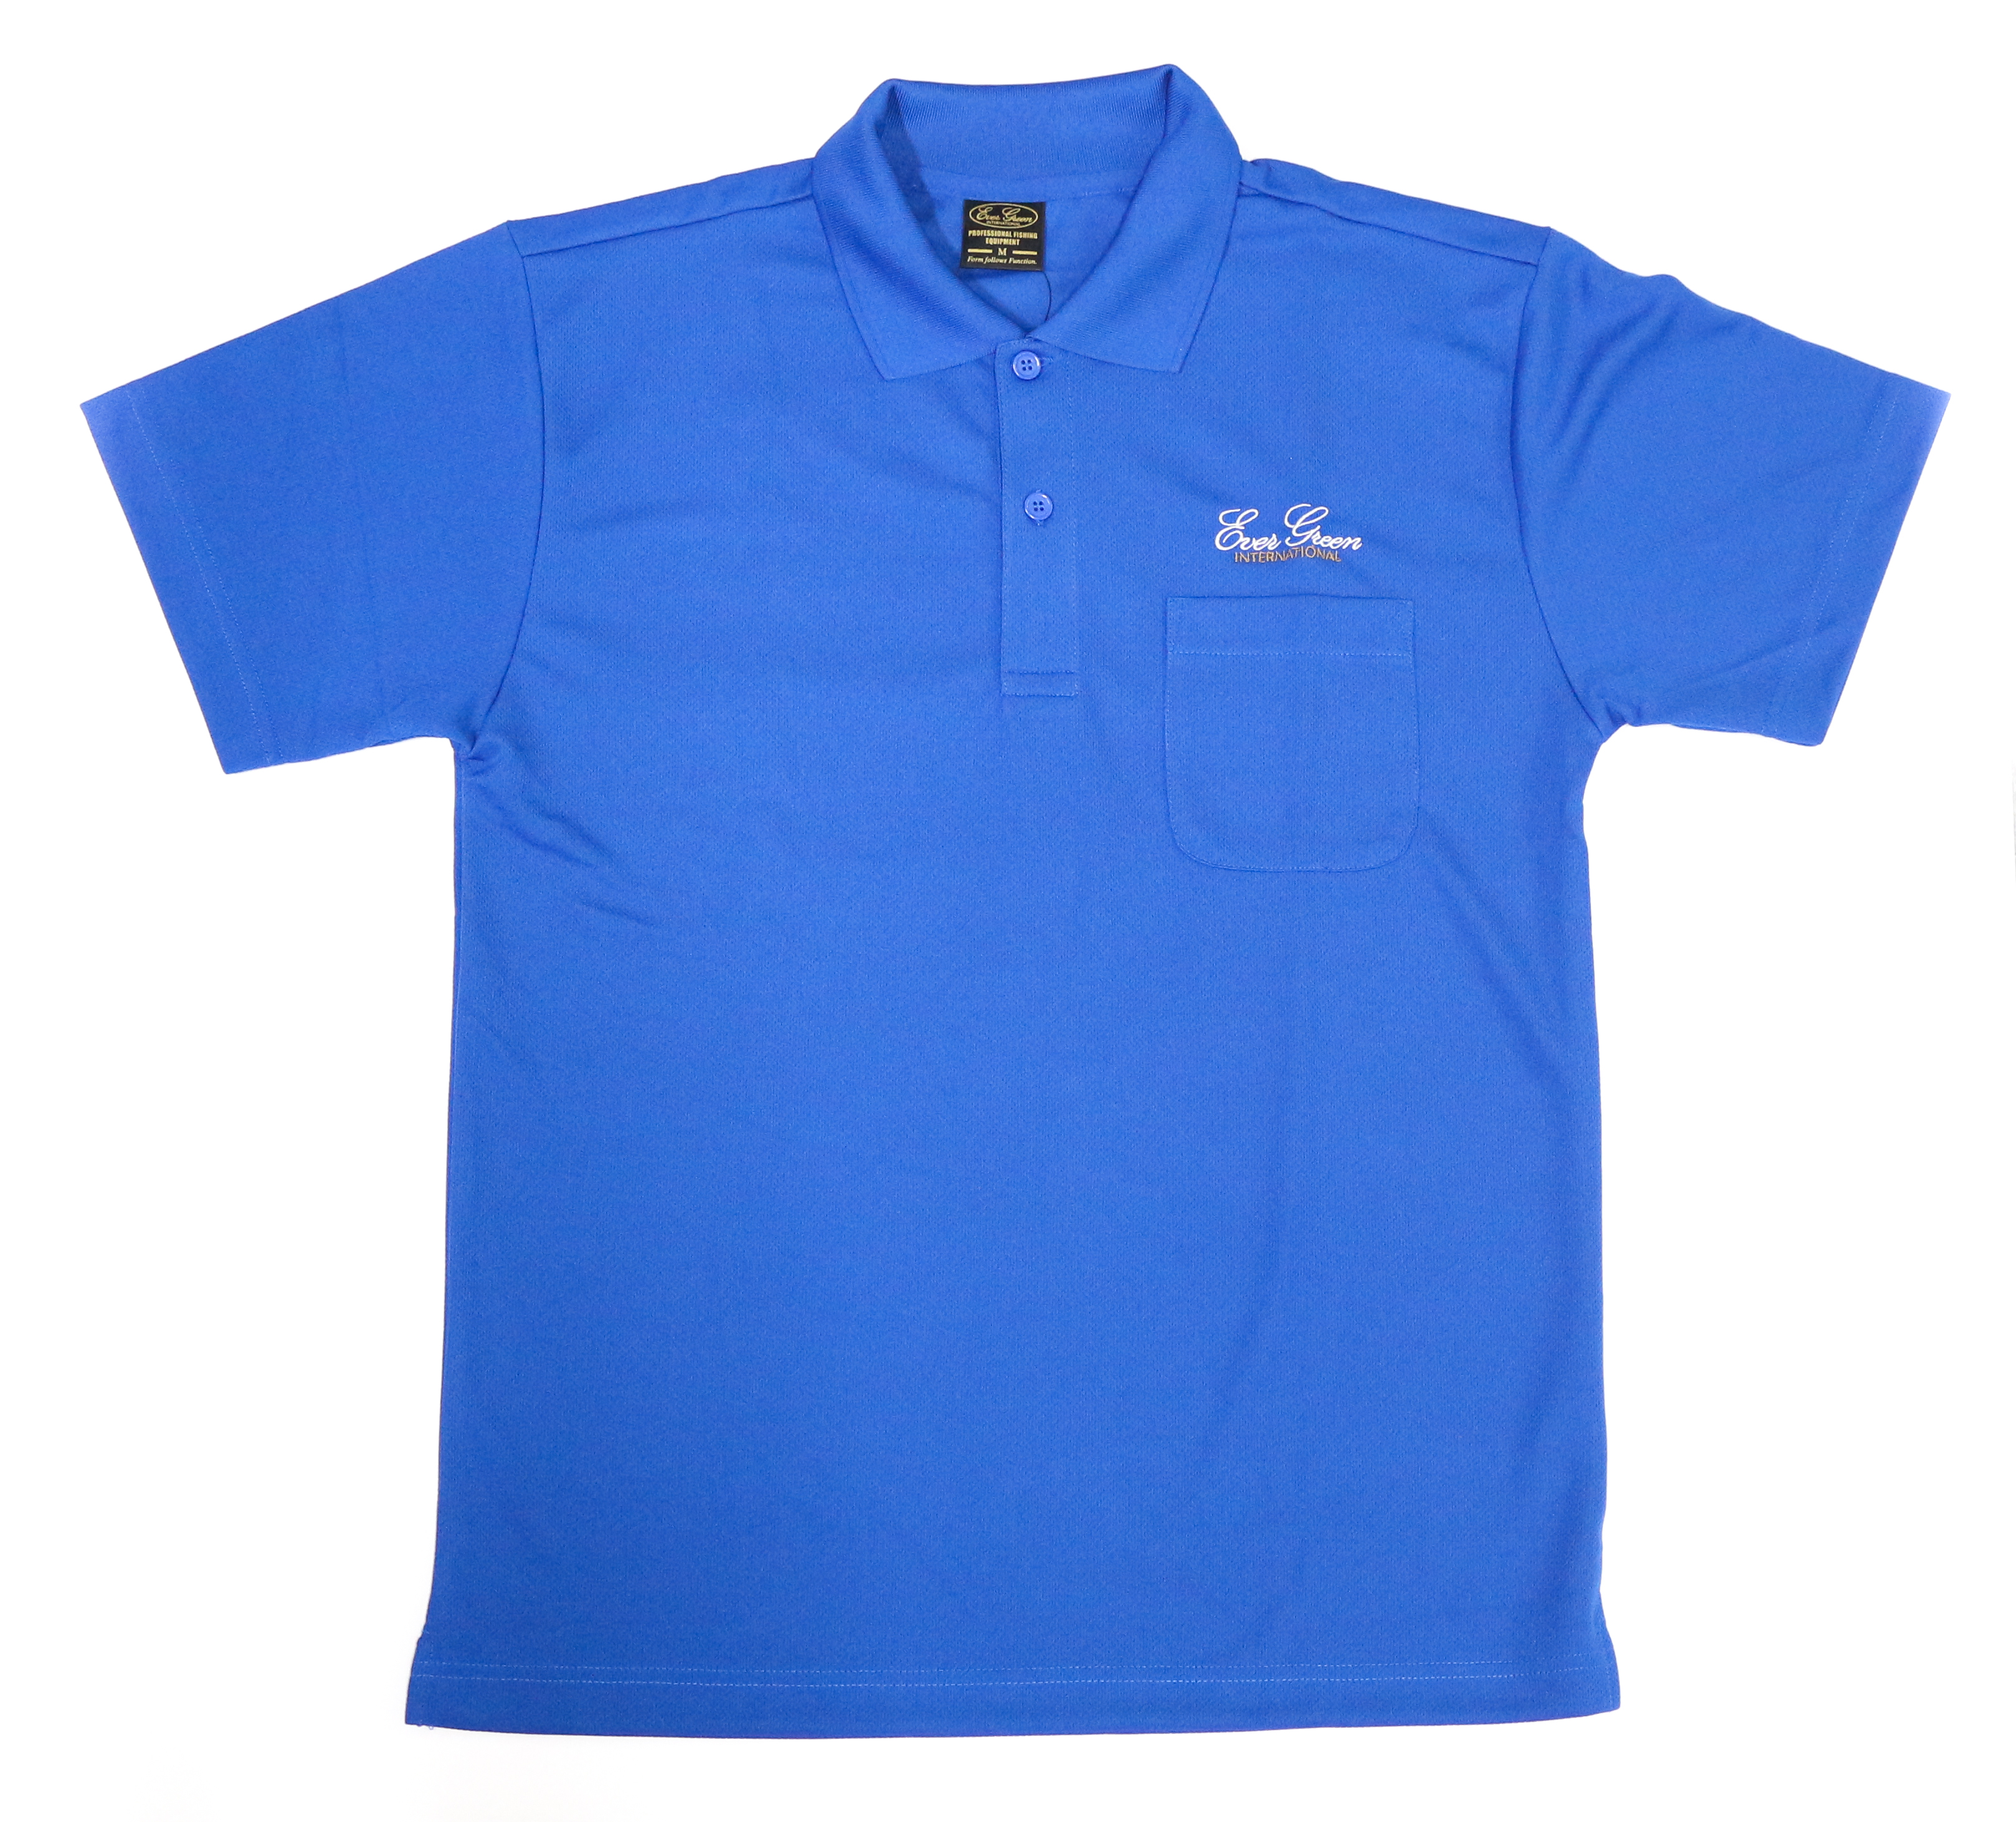 Evergreen Polo Shirt Dry Fit Short Sleeve Poseidon Type B Size L Blu (5800)